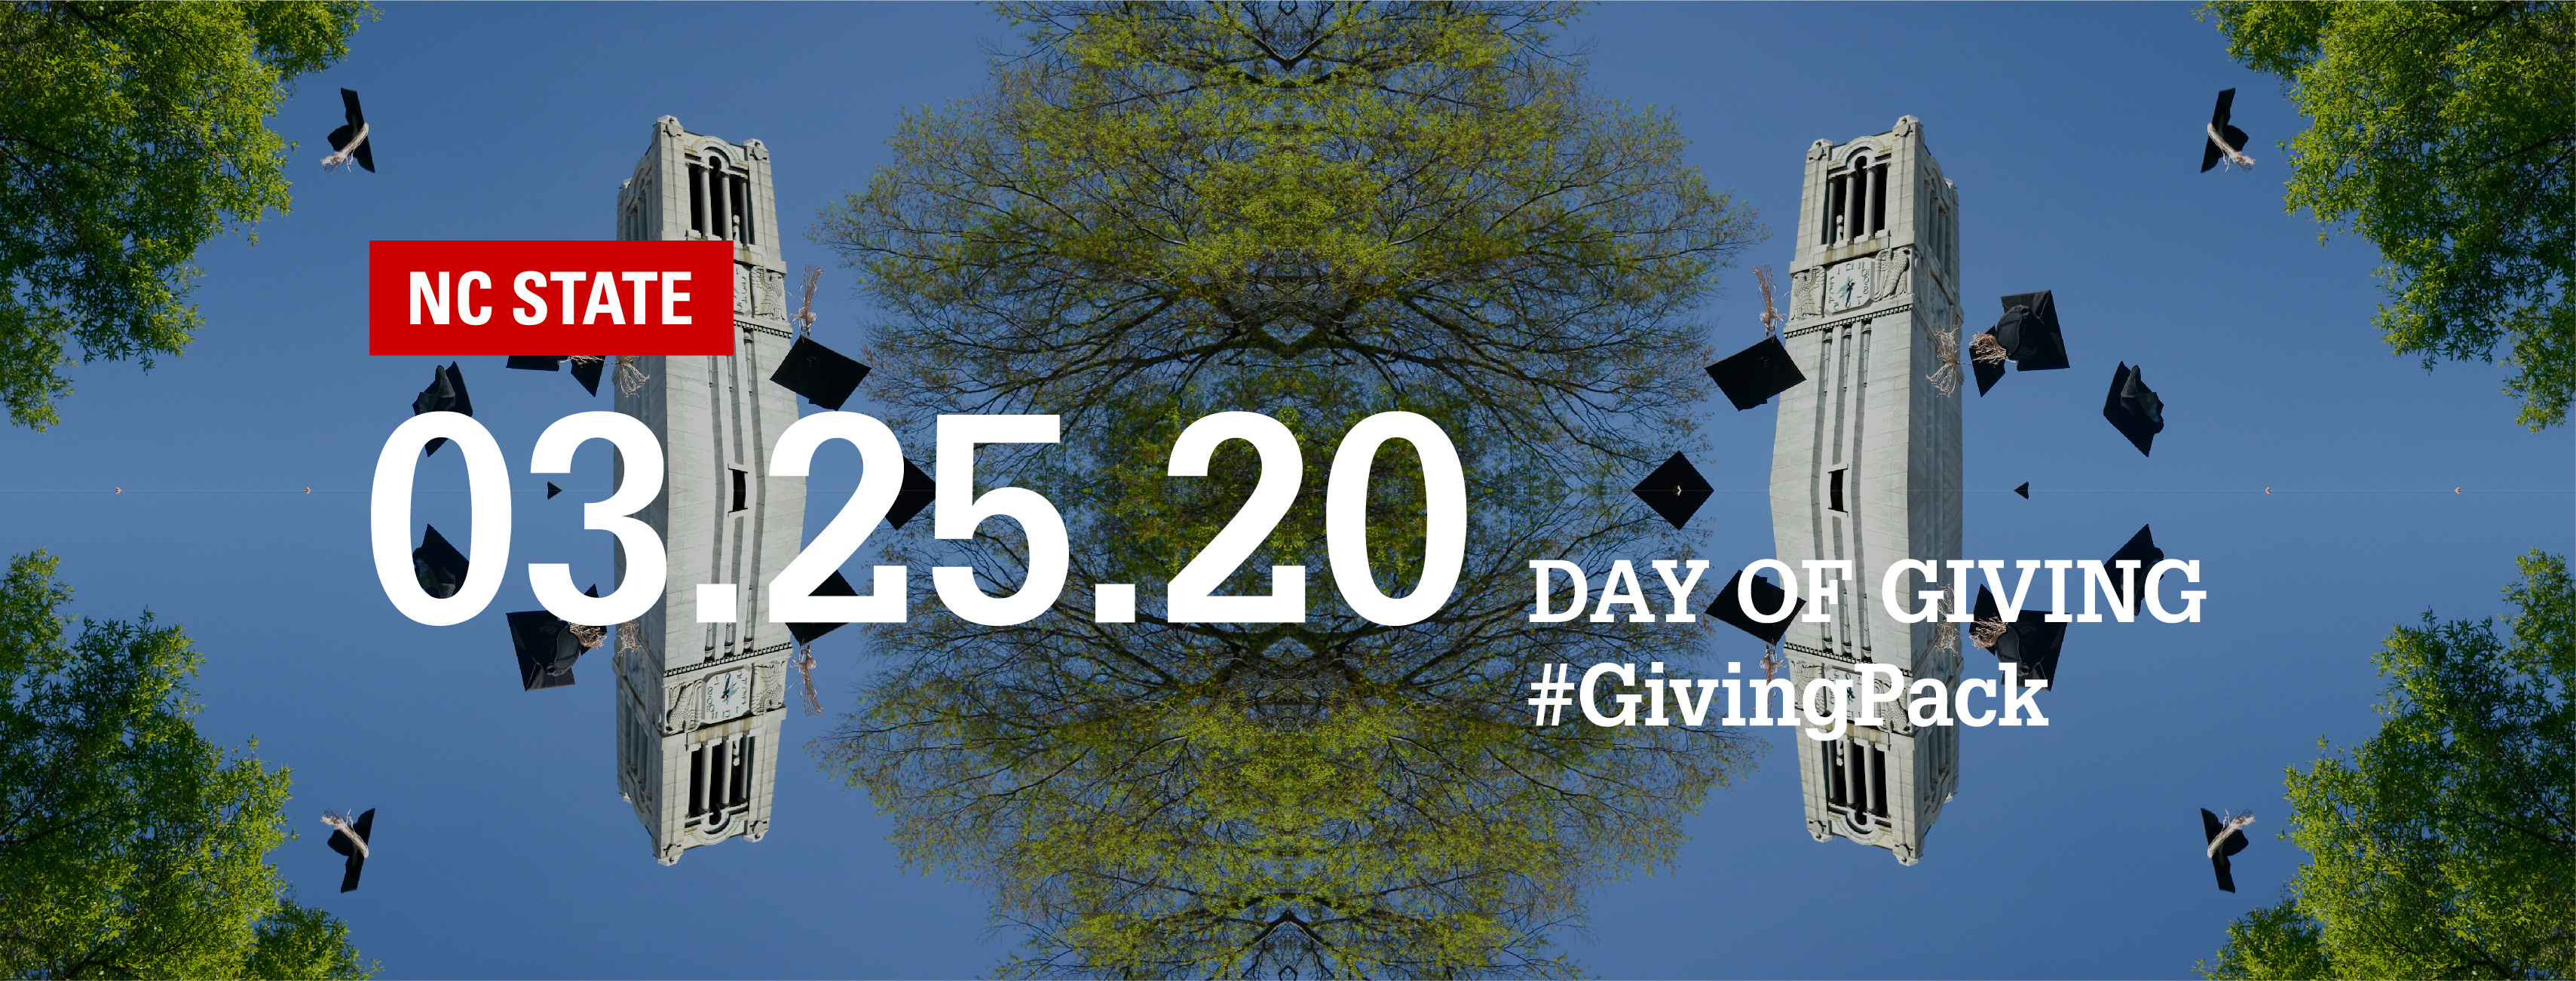 Facebook cover photo with image of the belltower and text reading NC State 03.25.20 Day of Giving Hashtag Giving Pack